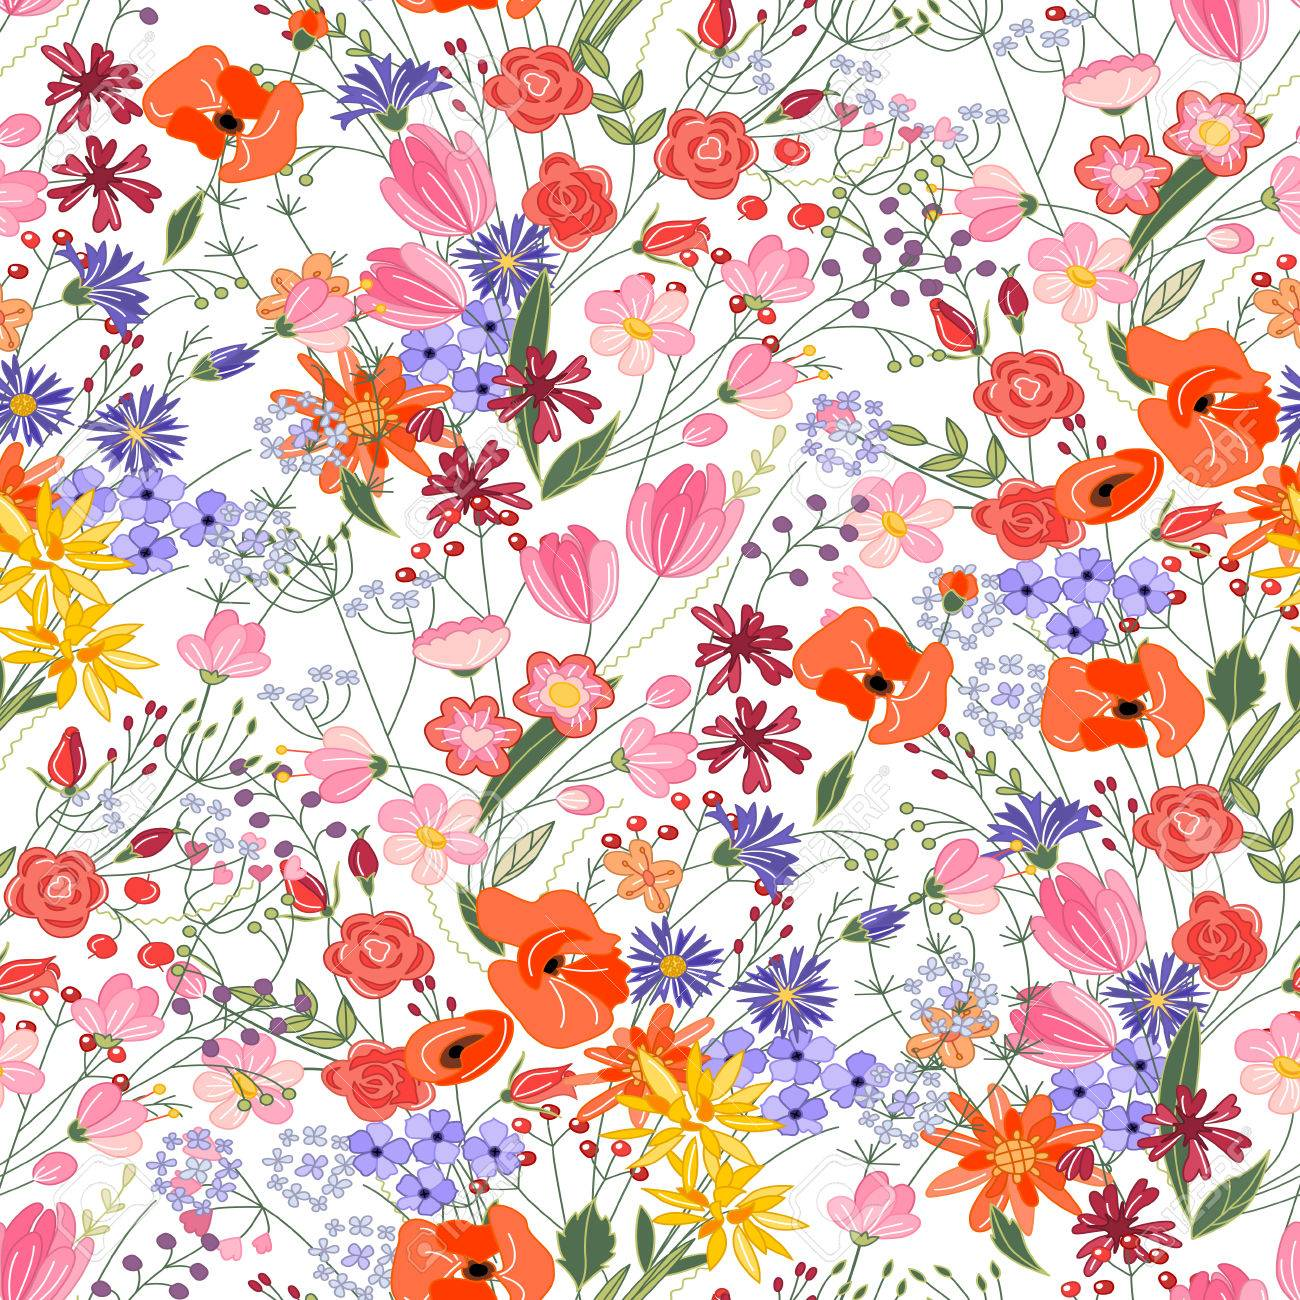 Floral seamless pattern with bright summer flowers. Endless texture for romantic design, decoration, greeting cards, posters, invitations, advertisement. - 56476800